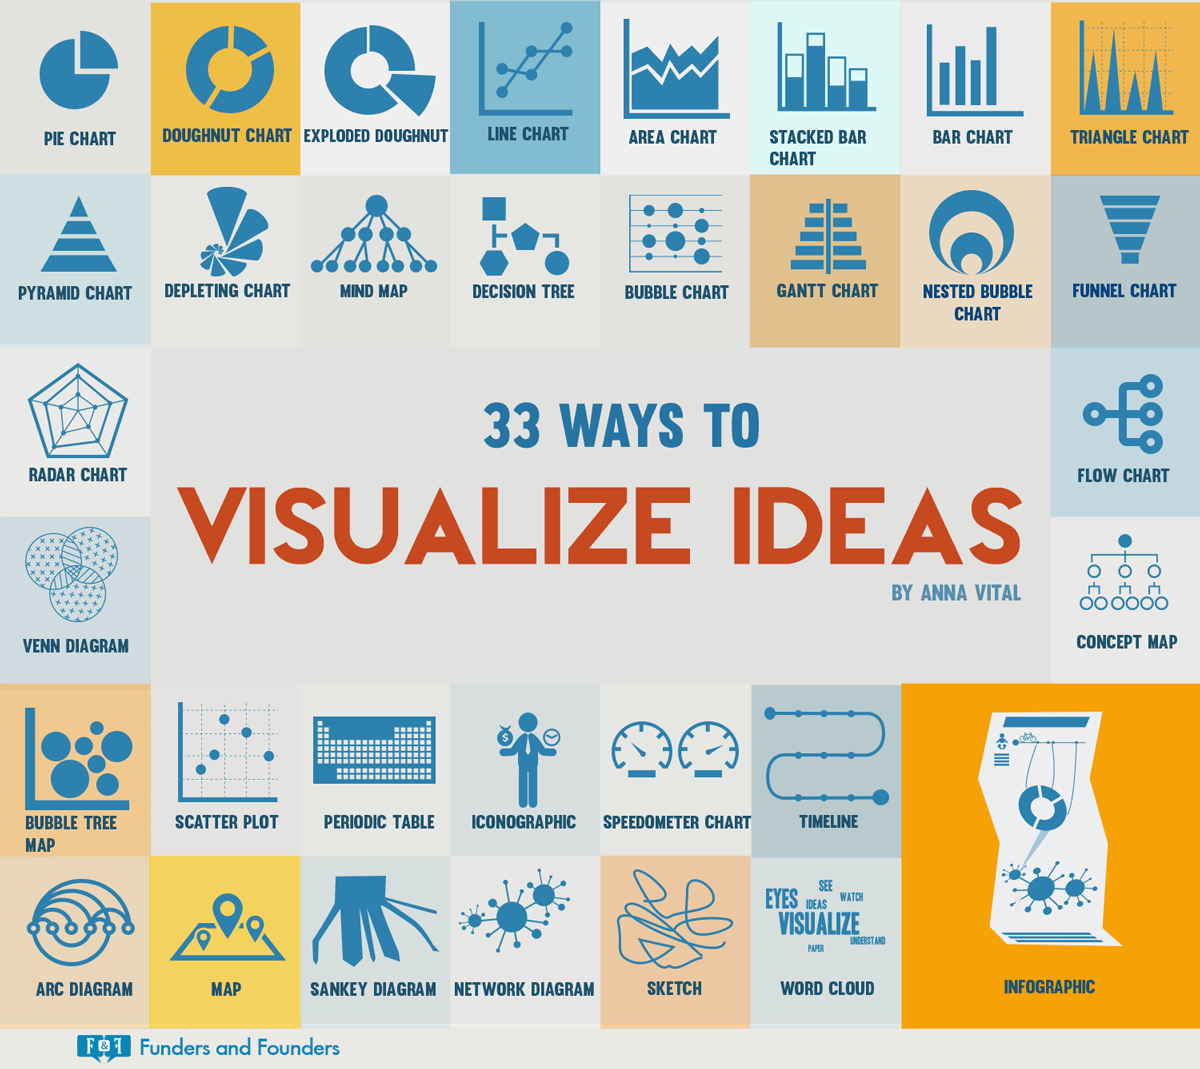 33 Ways to Visualize Ideas Choose among different charts, diagrams, and visual techniques to visualize your ideas. If you can see it, you can do it.